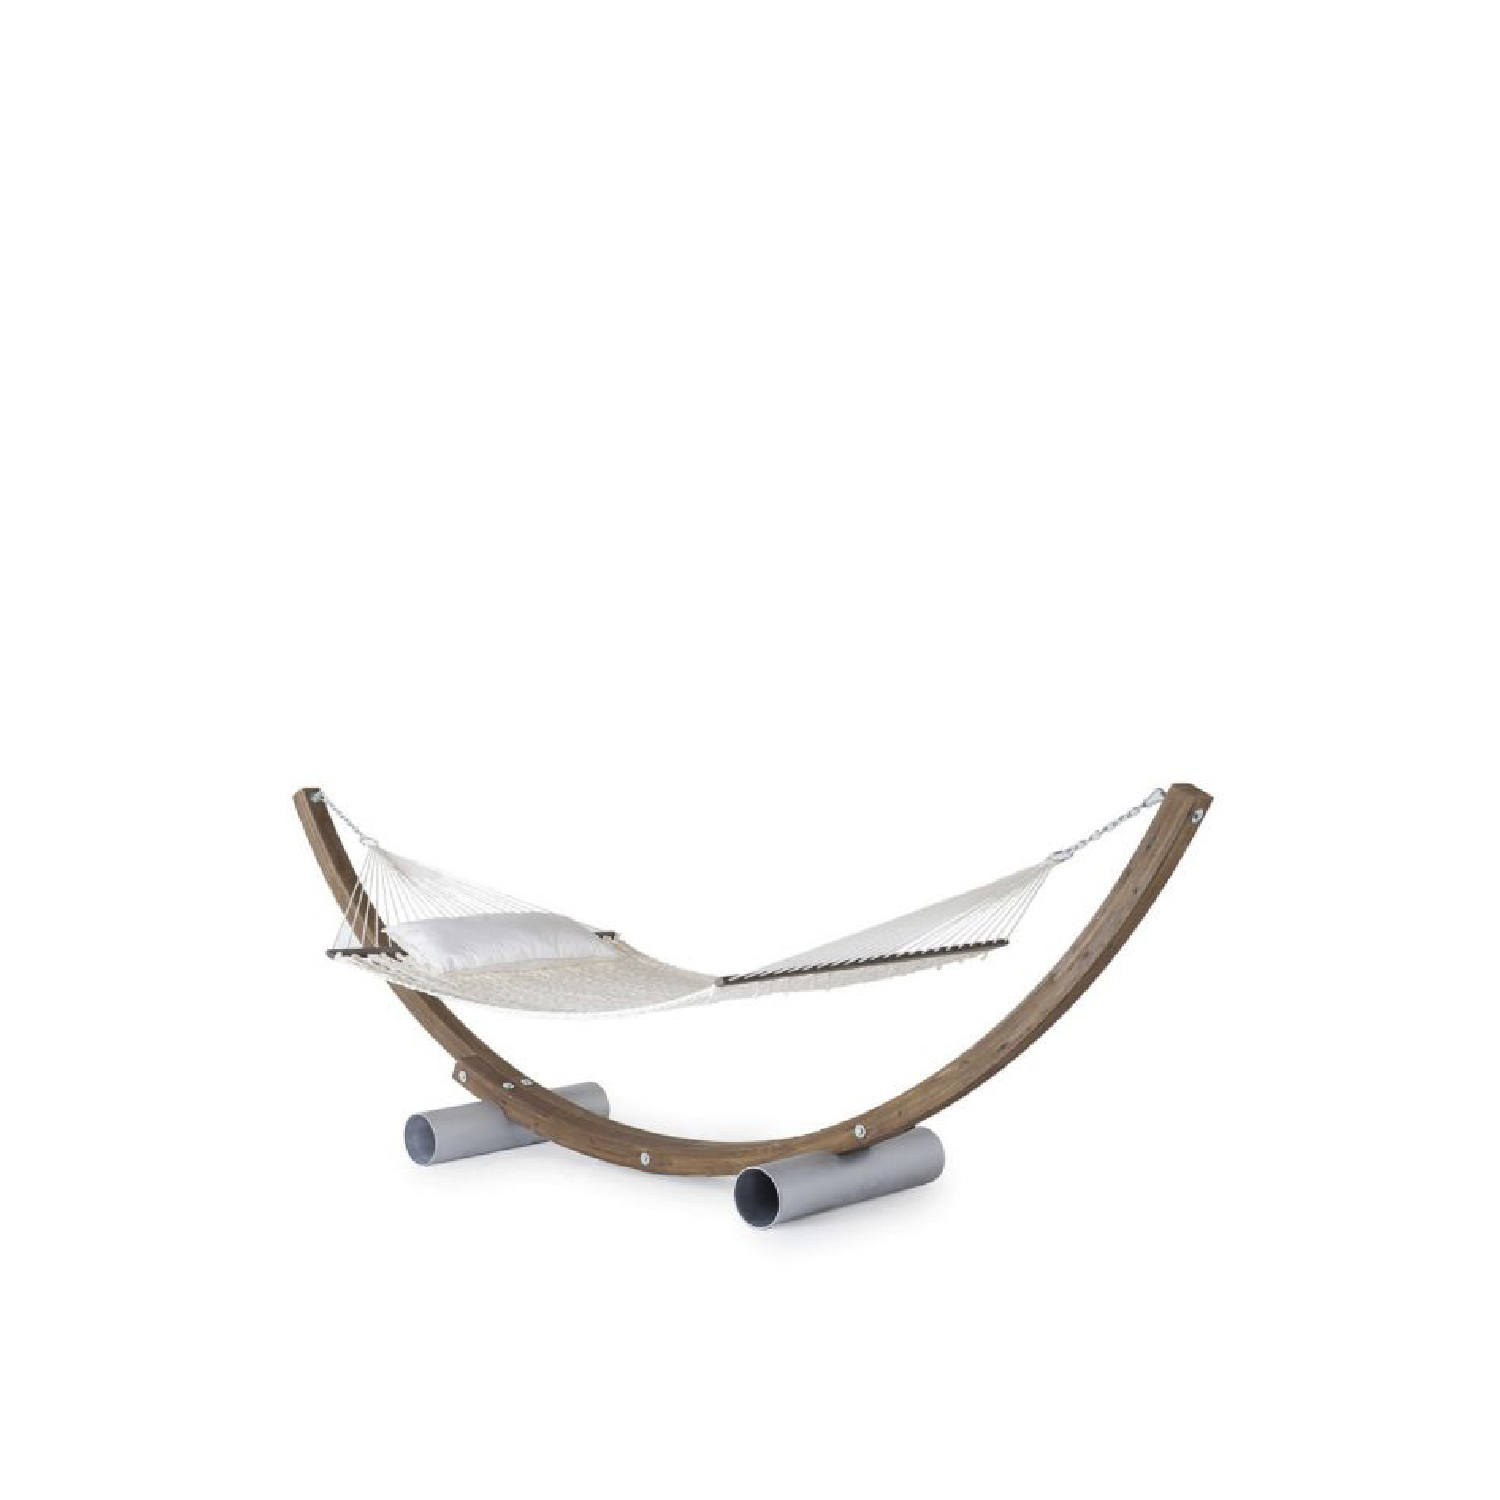 """Amanda Hammock With Natural Galvanized Steel Base - This timeless icon of Unopiù style was chosen by Paolo Sorrentino for his masterpiece """"The Great Beauty"""". Its unmistakable design was based on an idea as simple as it was clever: assemble curved lamellar wood poles with a handmade cord net.  Timeless icon of Unopiù style, the classic version of the hammock has been improved aesthetically with steel hardware to improve its performance. A new alternative version has also been introduced with a more modern design and a base in sandblasted galvanized steel.     